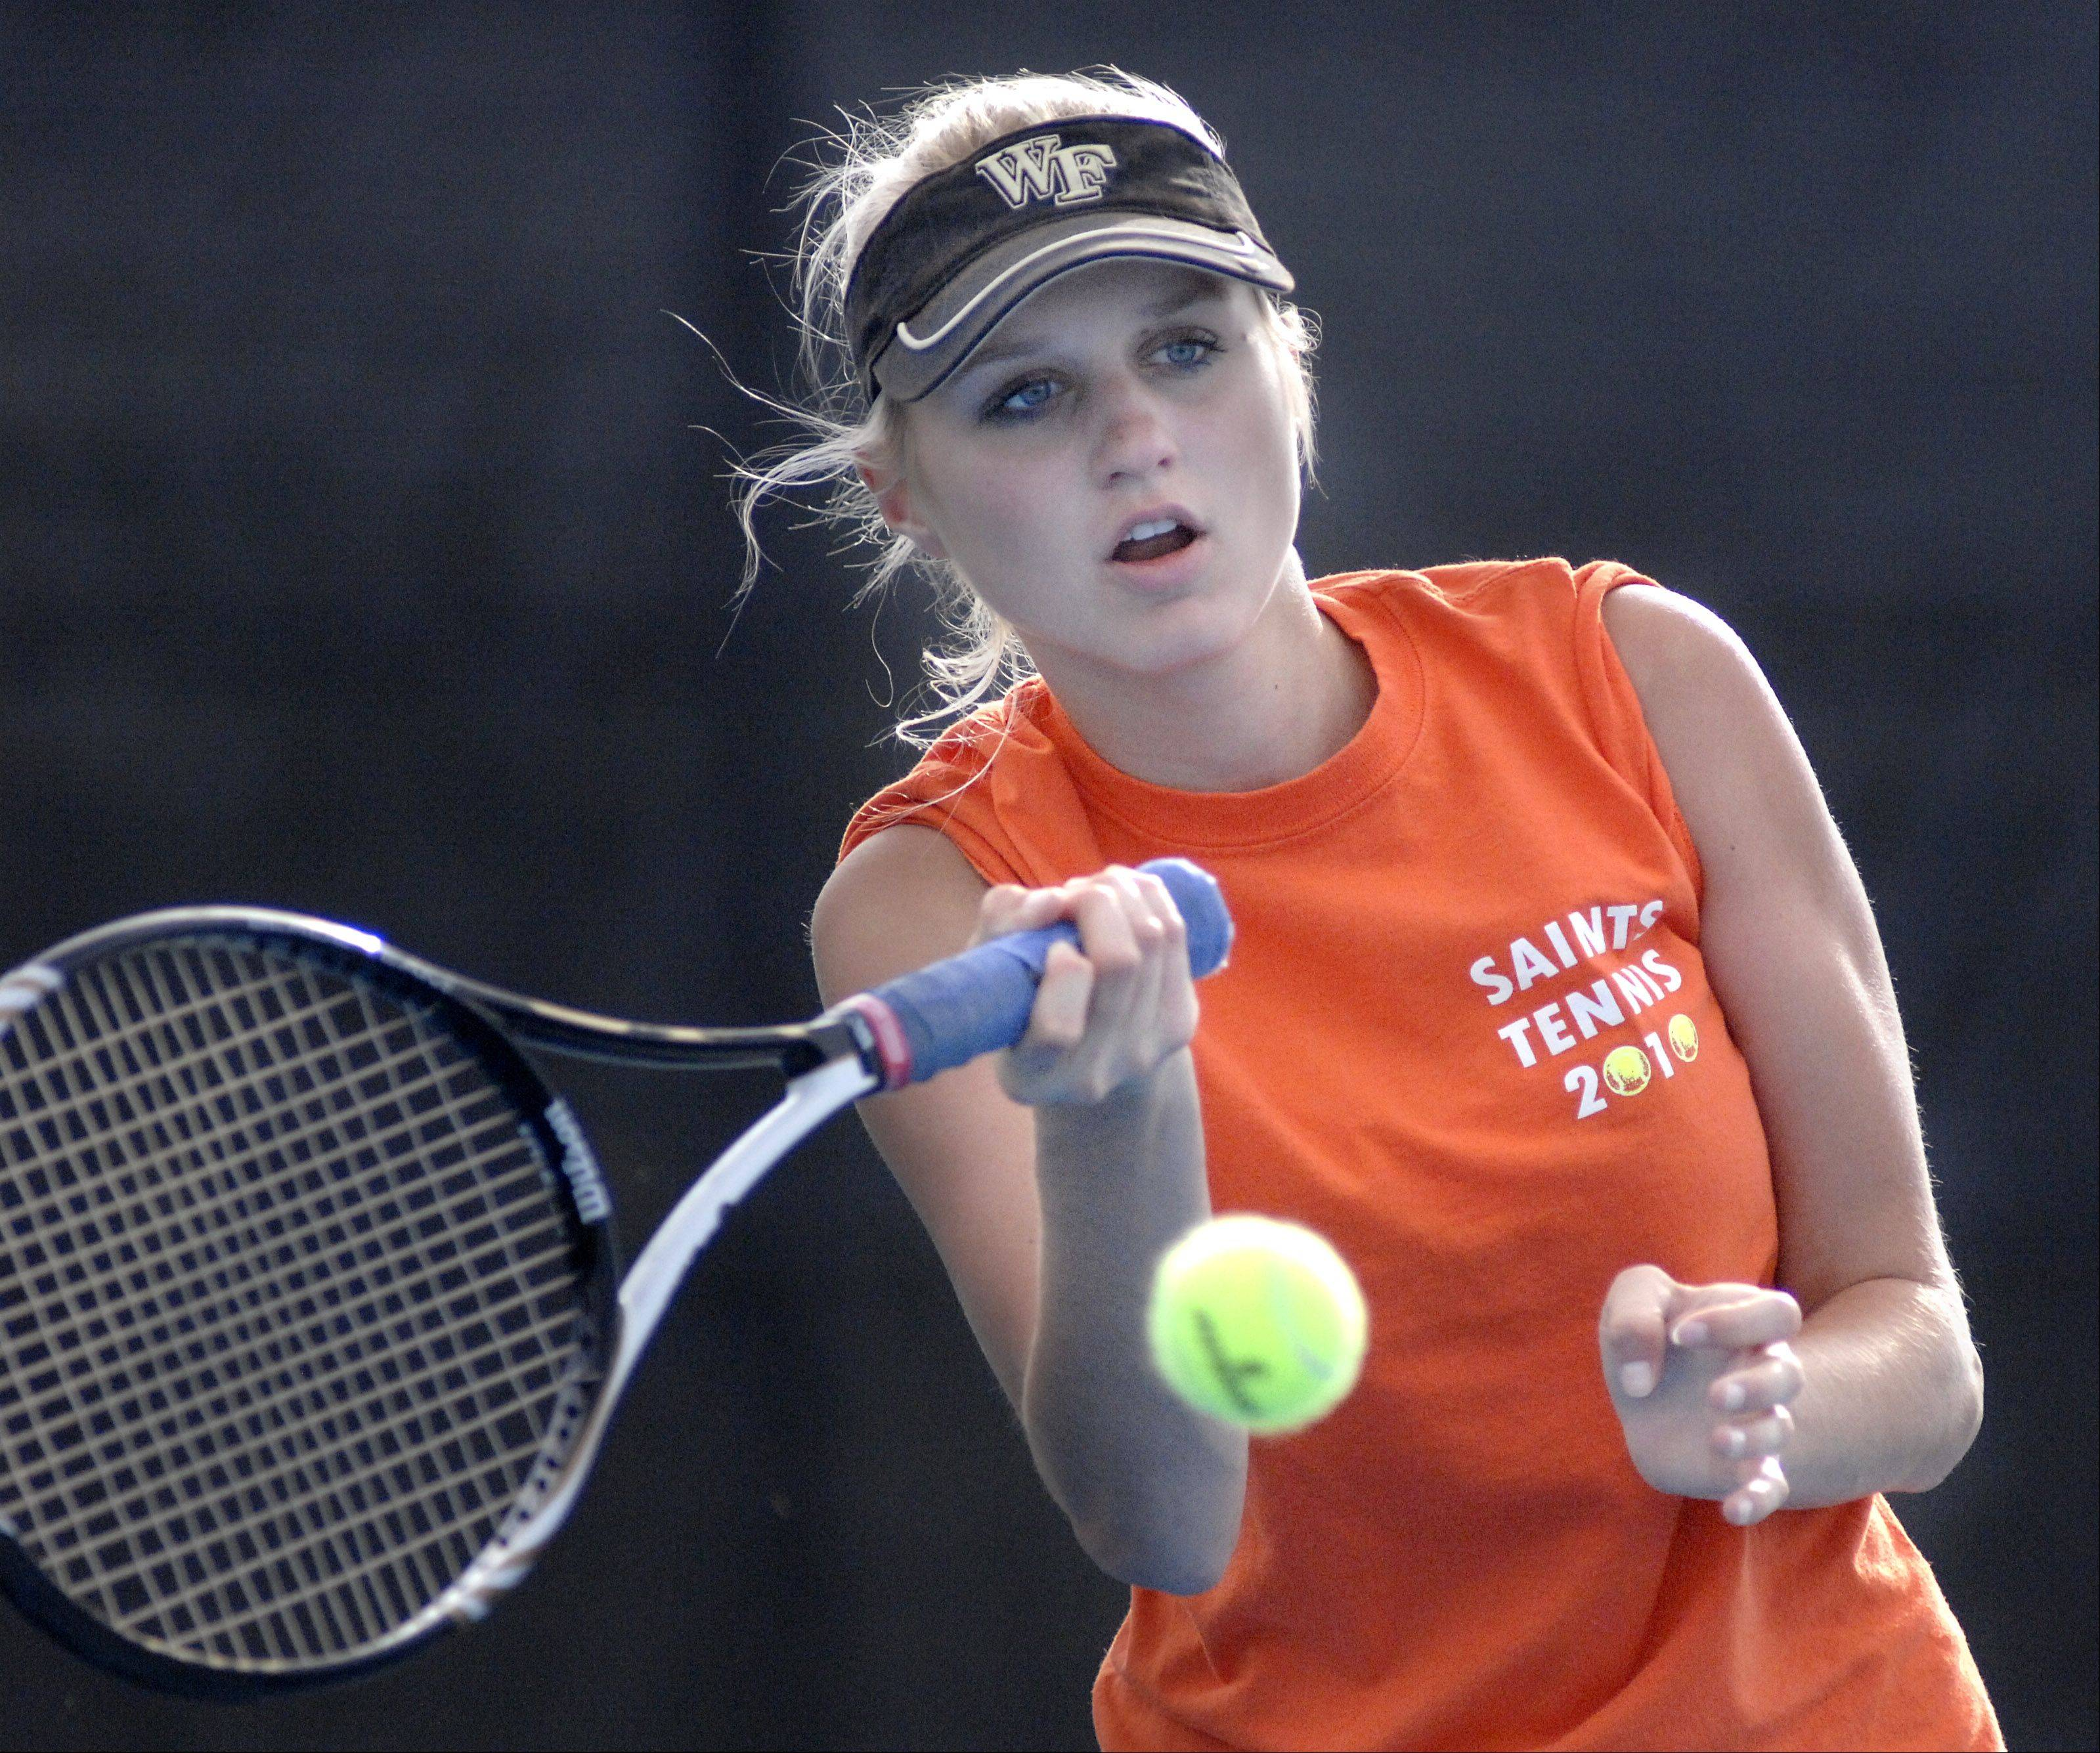 St. Charles East's Sarah Church in the first singles match on Tuesday, September 18.